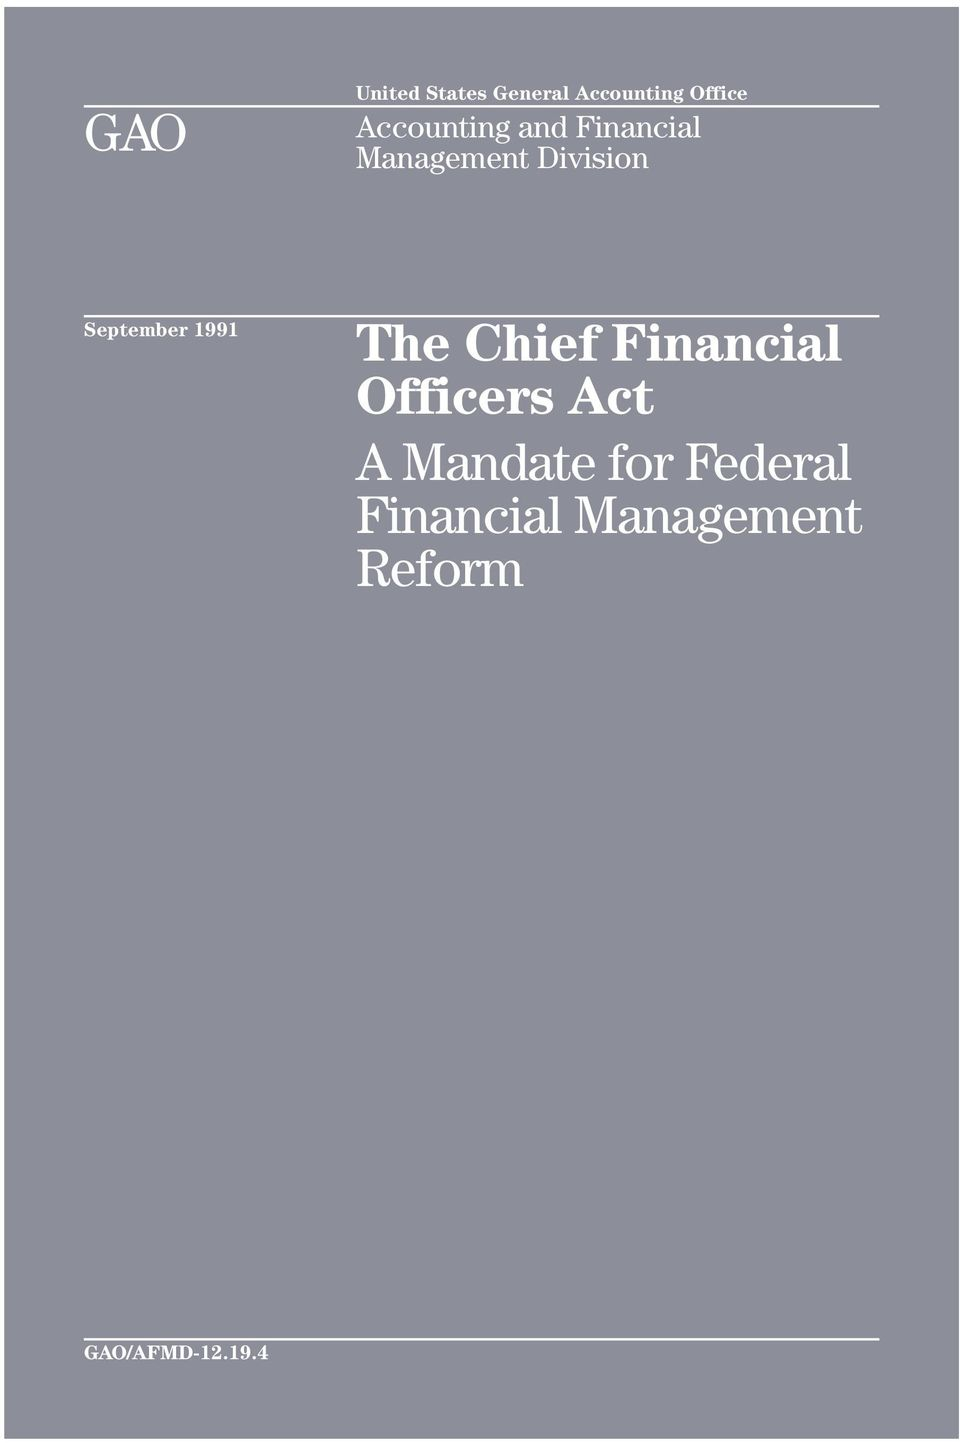 September 1991 The Chief Financial Officers Act A